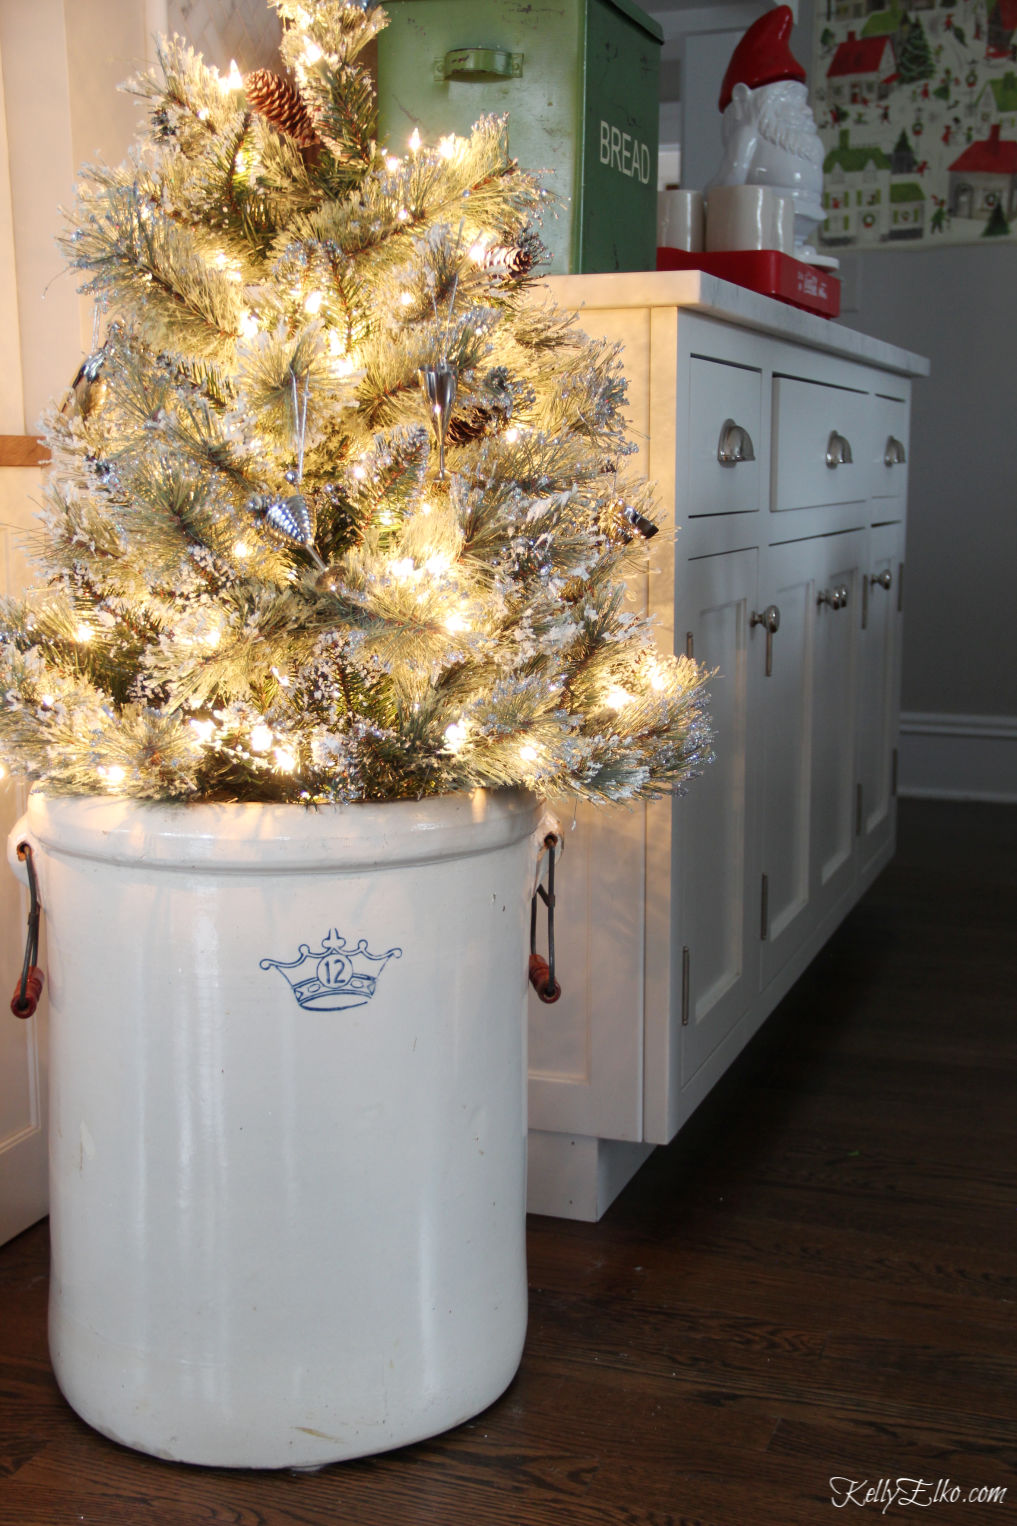 Beautiful vintage modern Christmas home tour - love the antique crock holding a Christmas tree kellyelko.com #christmas #christmasdecor #christmasdecorating #christmashome #christmastour #diychristmas #christmasideas #christmasmantel #christmastree #christmasornaments #vintagechristmas #farmhousechristmas #colorfulchristmas #creativechristmas #kellyelko #crock #vintagecrock #christmaskitchen